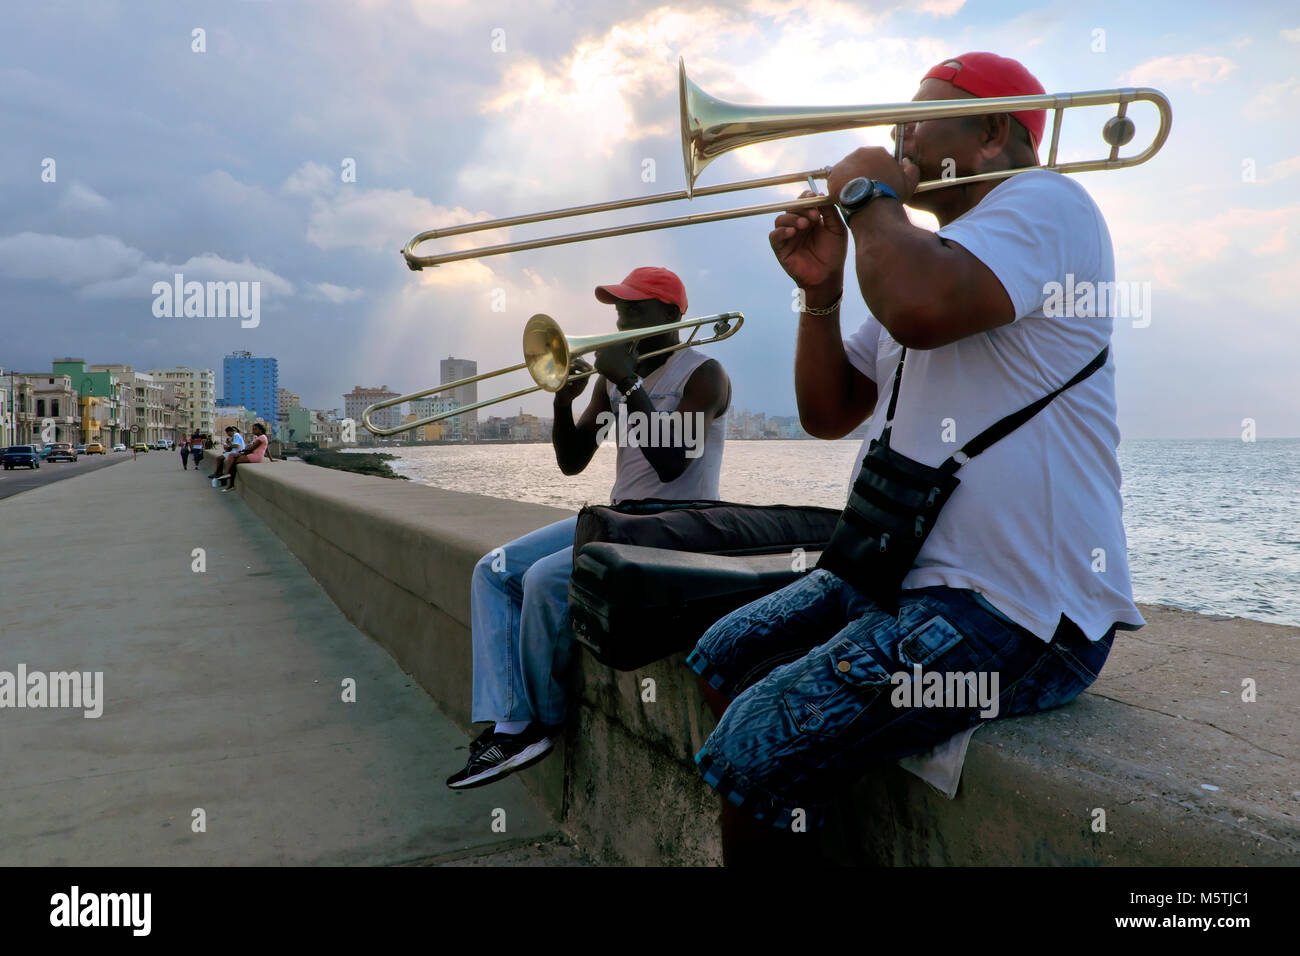 Trombone buskers / musicians playing along the Malecón Esplanade, Havana, Cuba - Stock Image